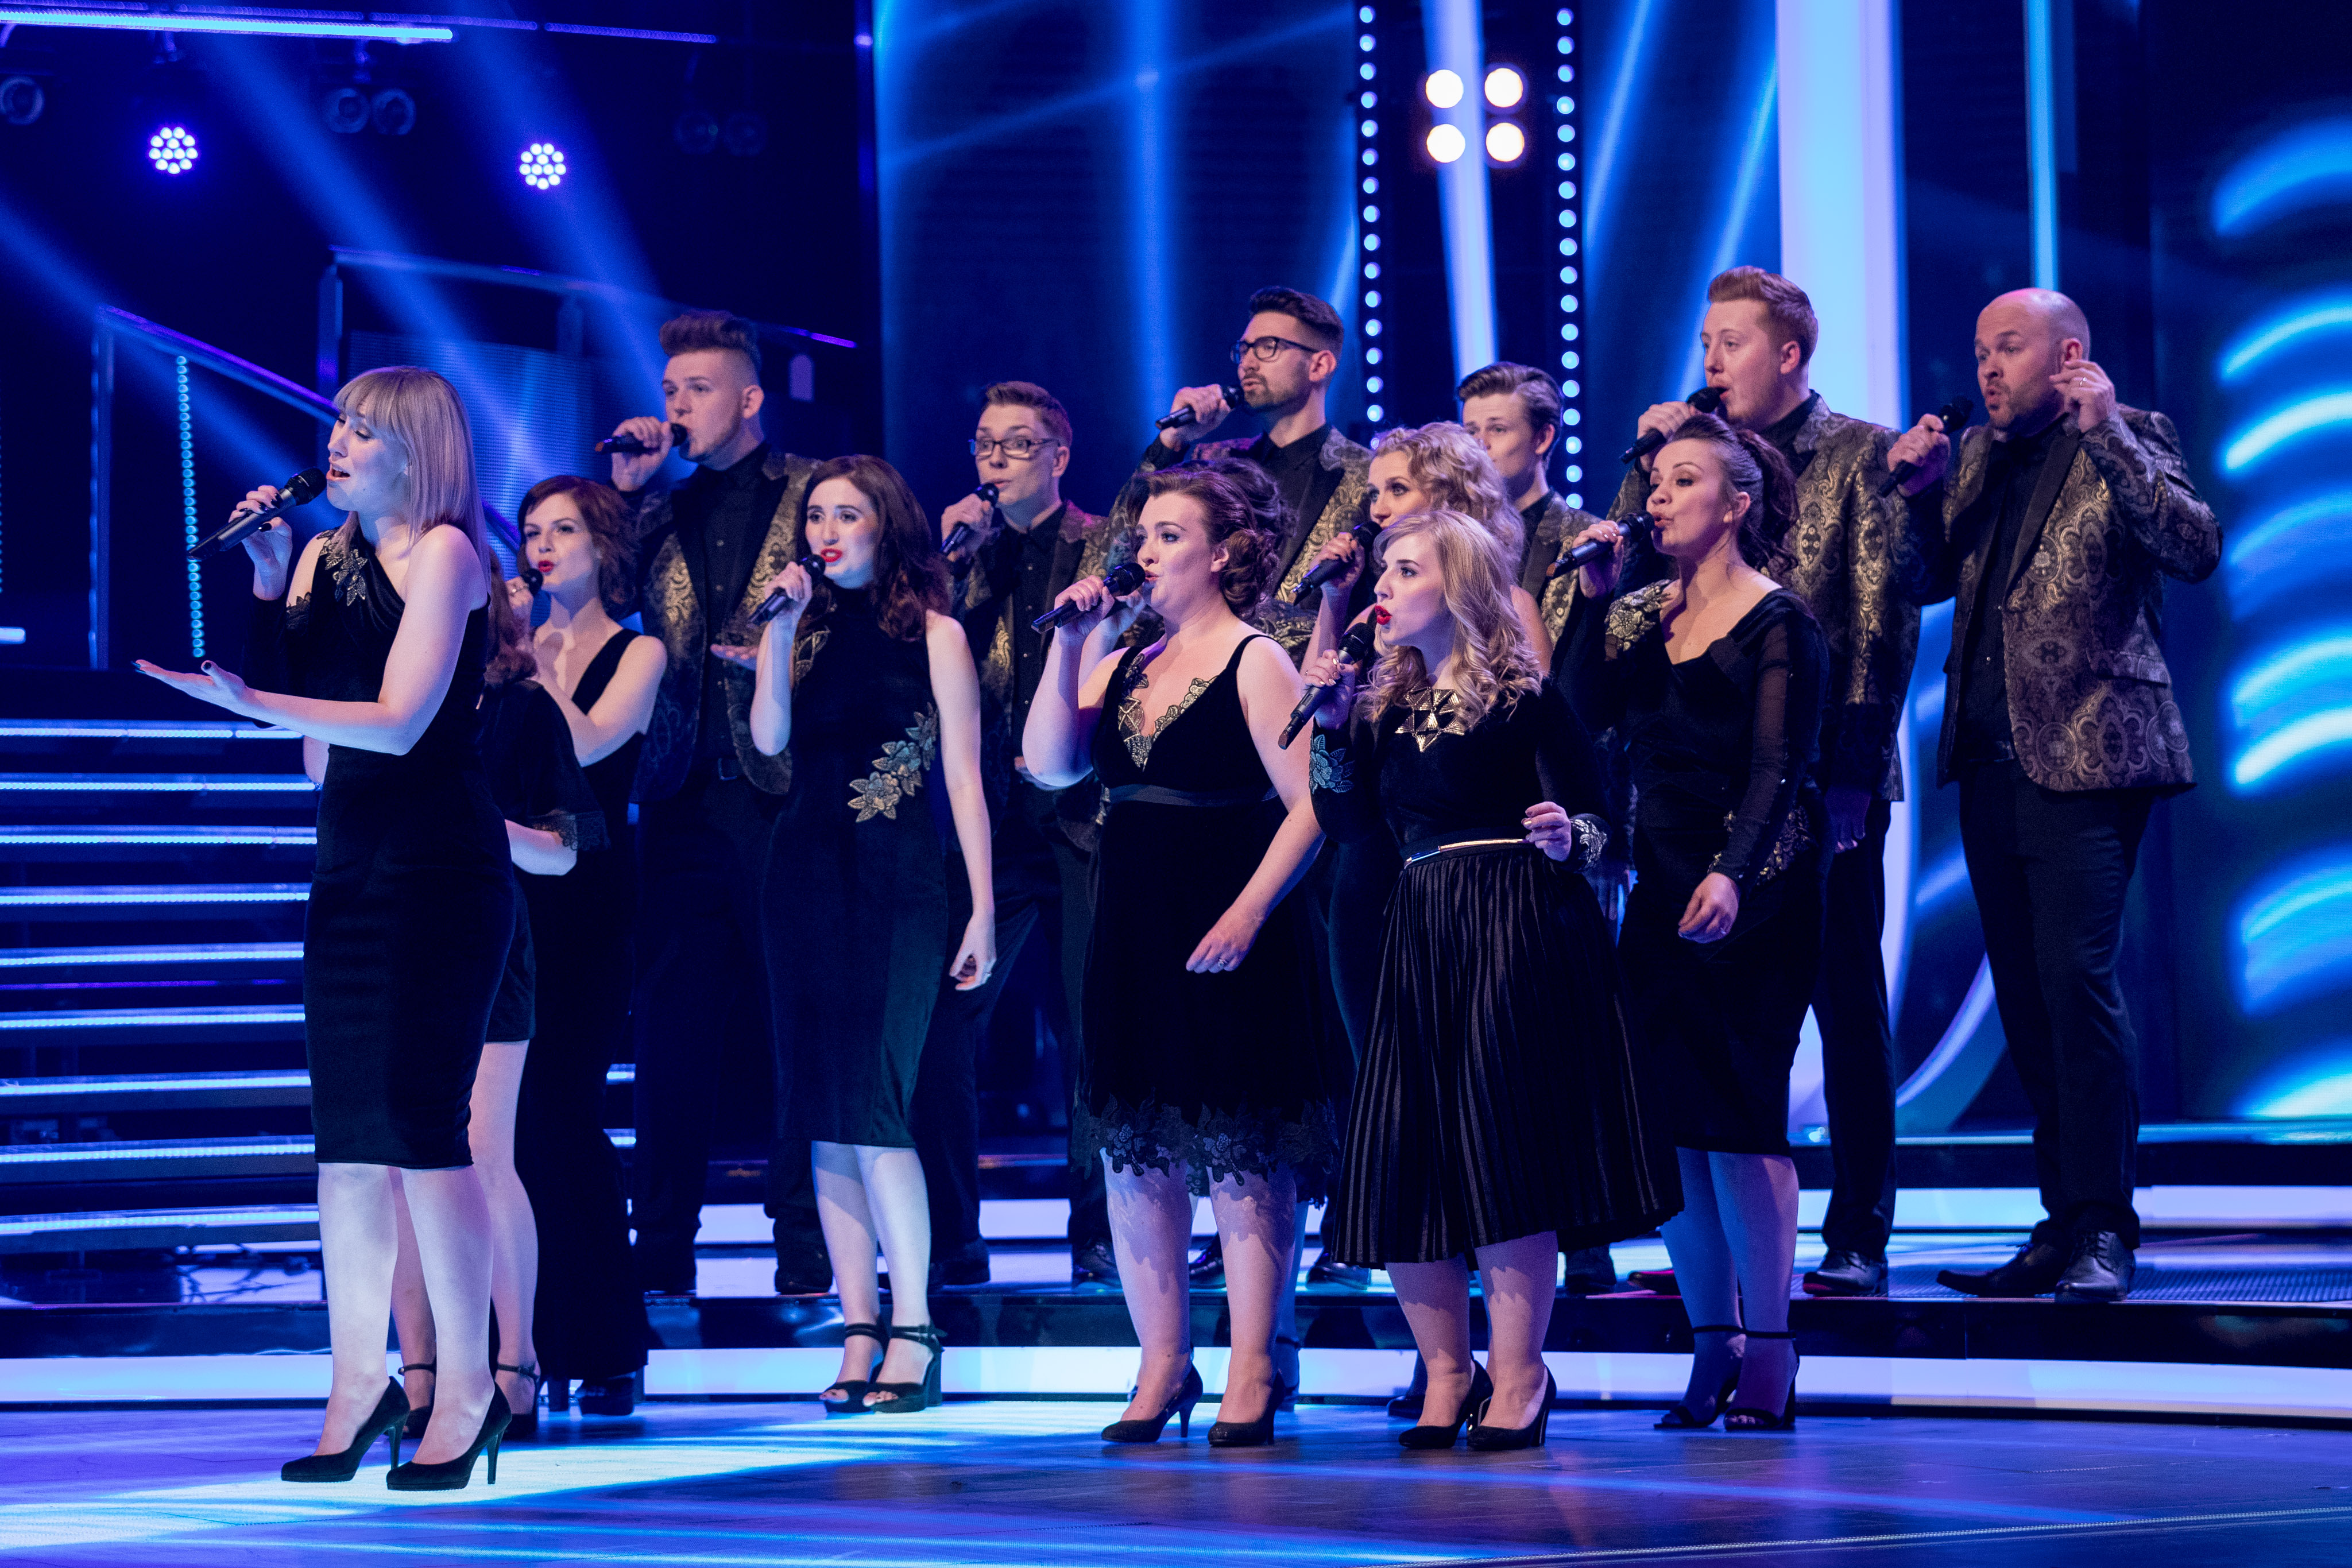 Six choirs to compete in pitch battle final shropshire star sgarmes bbc fandeluxe Ebook collections